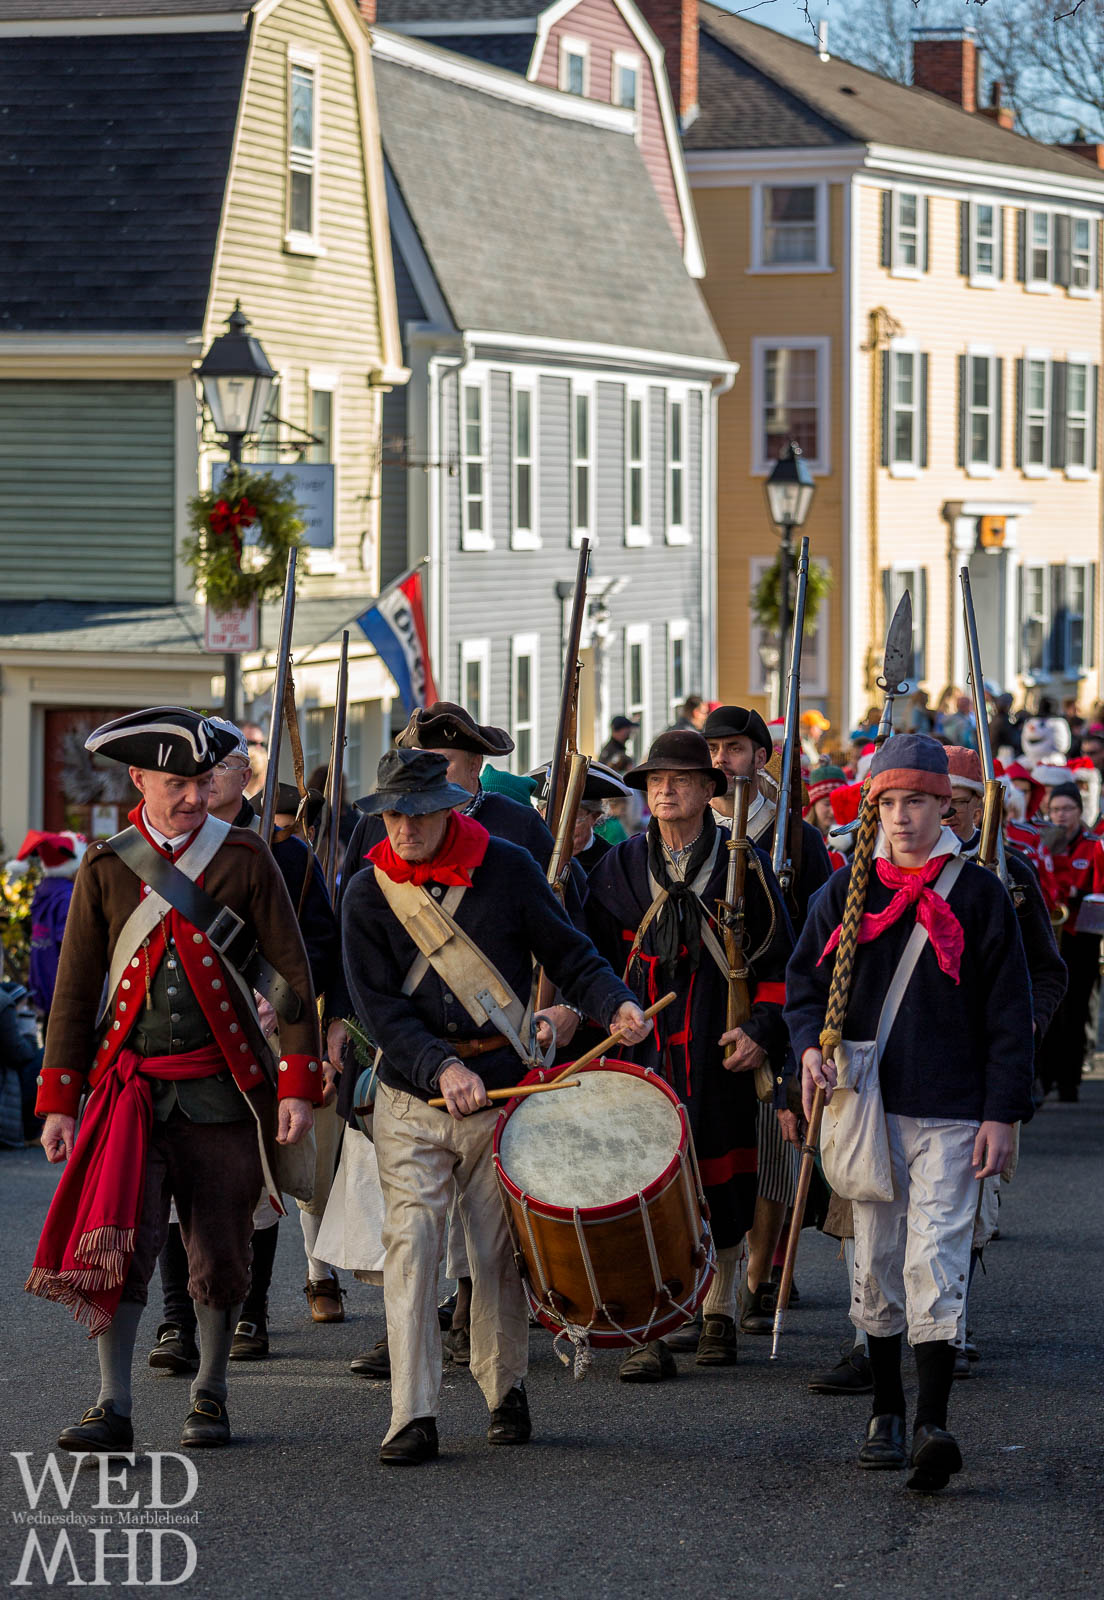 Glover's regiment marches up State Street during the annual Marblehead Christmas Walk parade